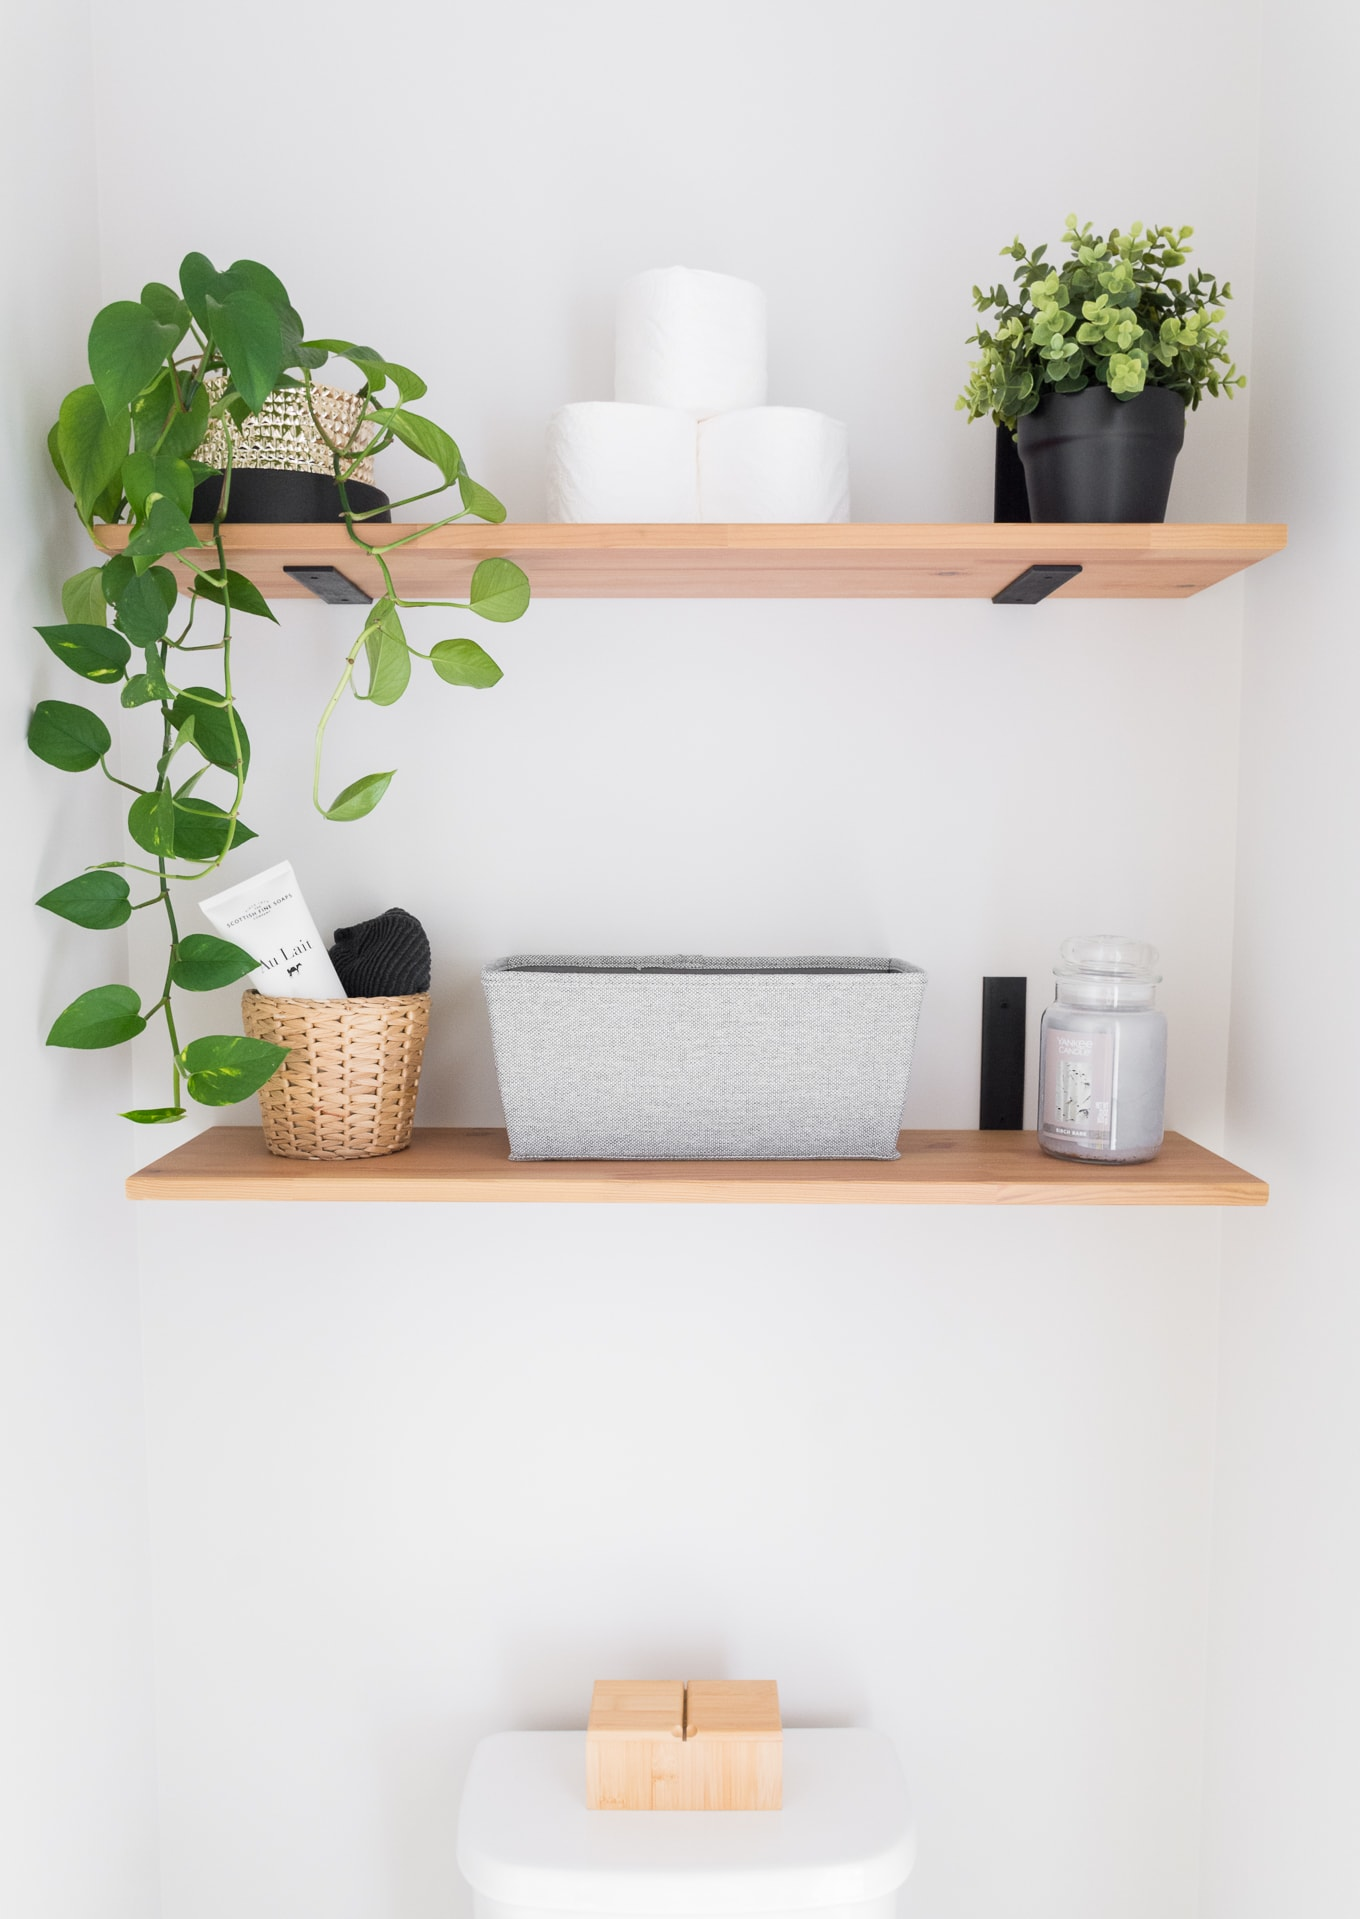 Clean and simple powder room. Our modern minimal townhouse for a family of three (and two kitties!). Looking for townhouse decorating ideas? Check out our home tour. #townhomes #townhouse #townhousedecoratingideas #townhouseideas #modernhomedecor #townhouseinspiration #diy #modernhomedecor #scandanavianinterior #nordicinspired #scandanavianinspired #scandiinspired #houseplants #powderroom #smallbathroom #modernpowderroom